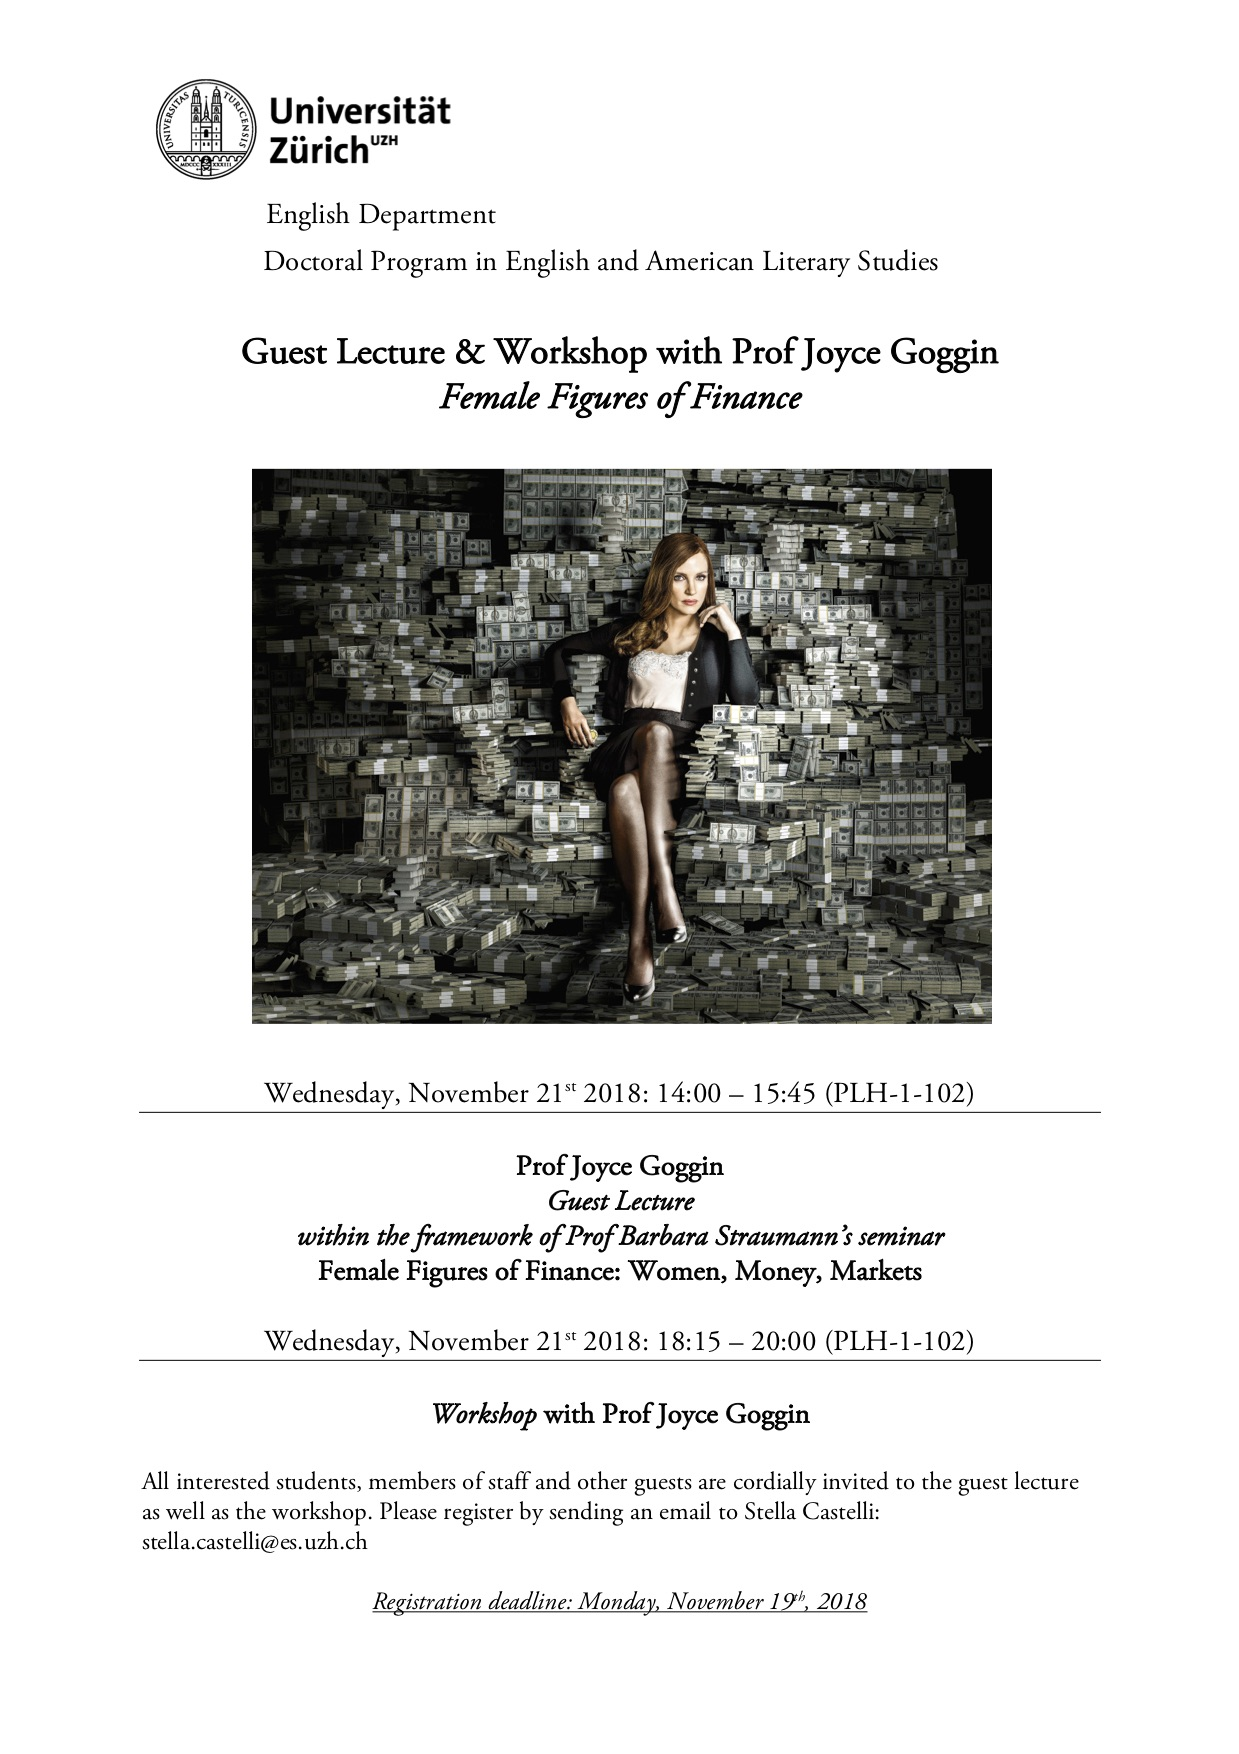 Guest Lecture & Workshop with Prof Joyce Goggin